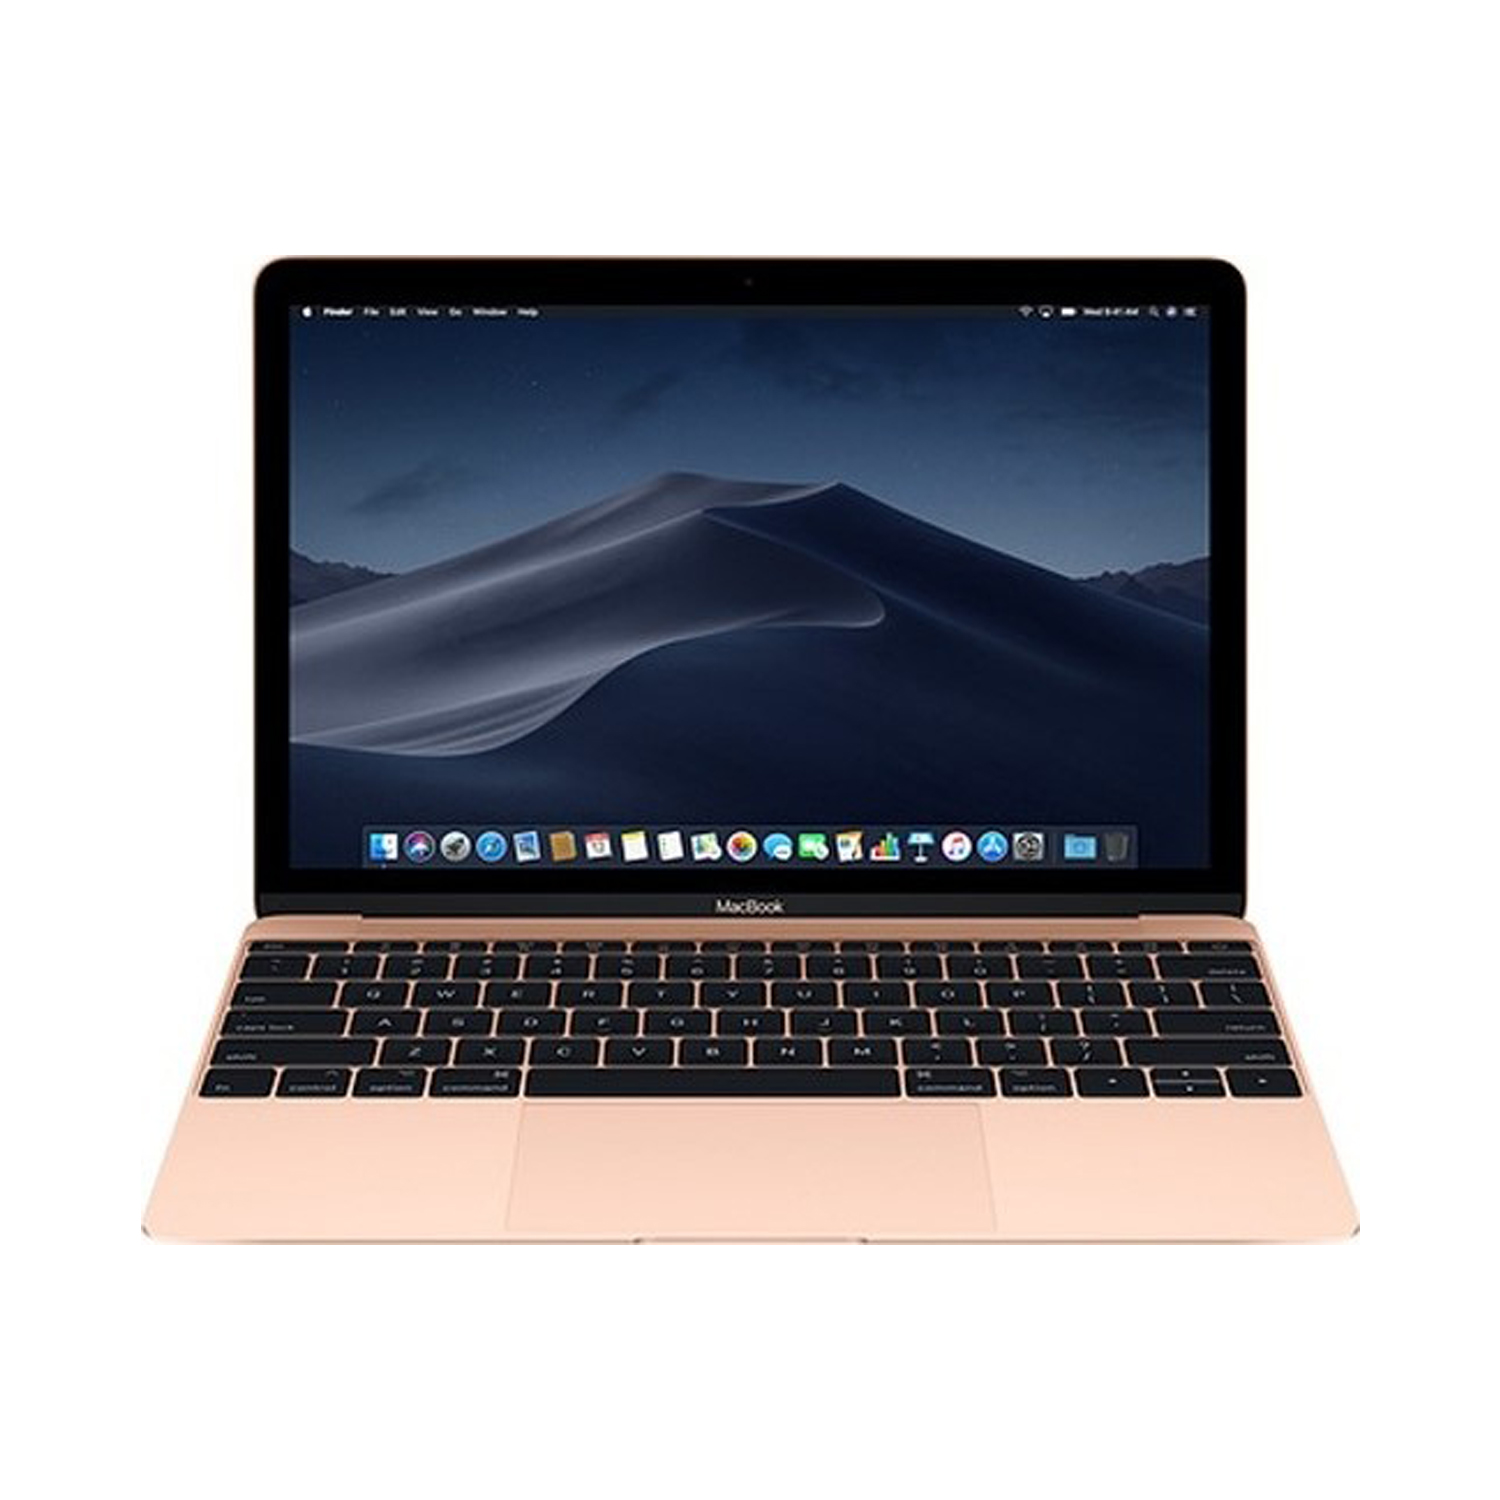 Apple MacBook MRQN2 2018 – مک بوک پرو MRQN2